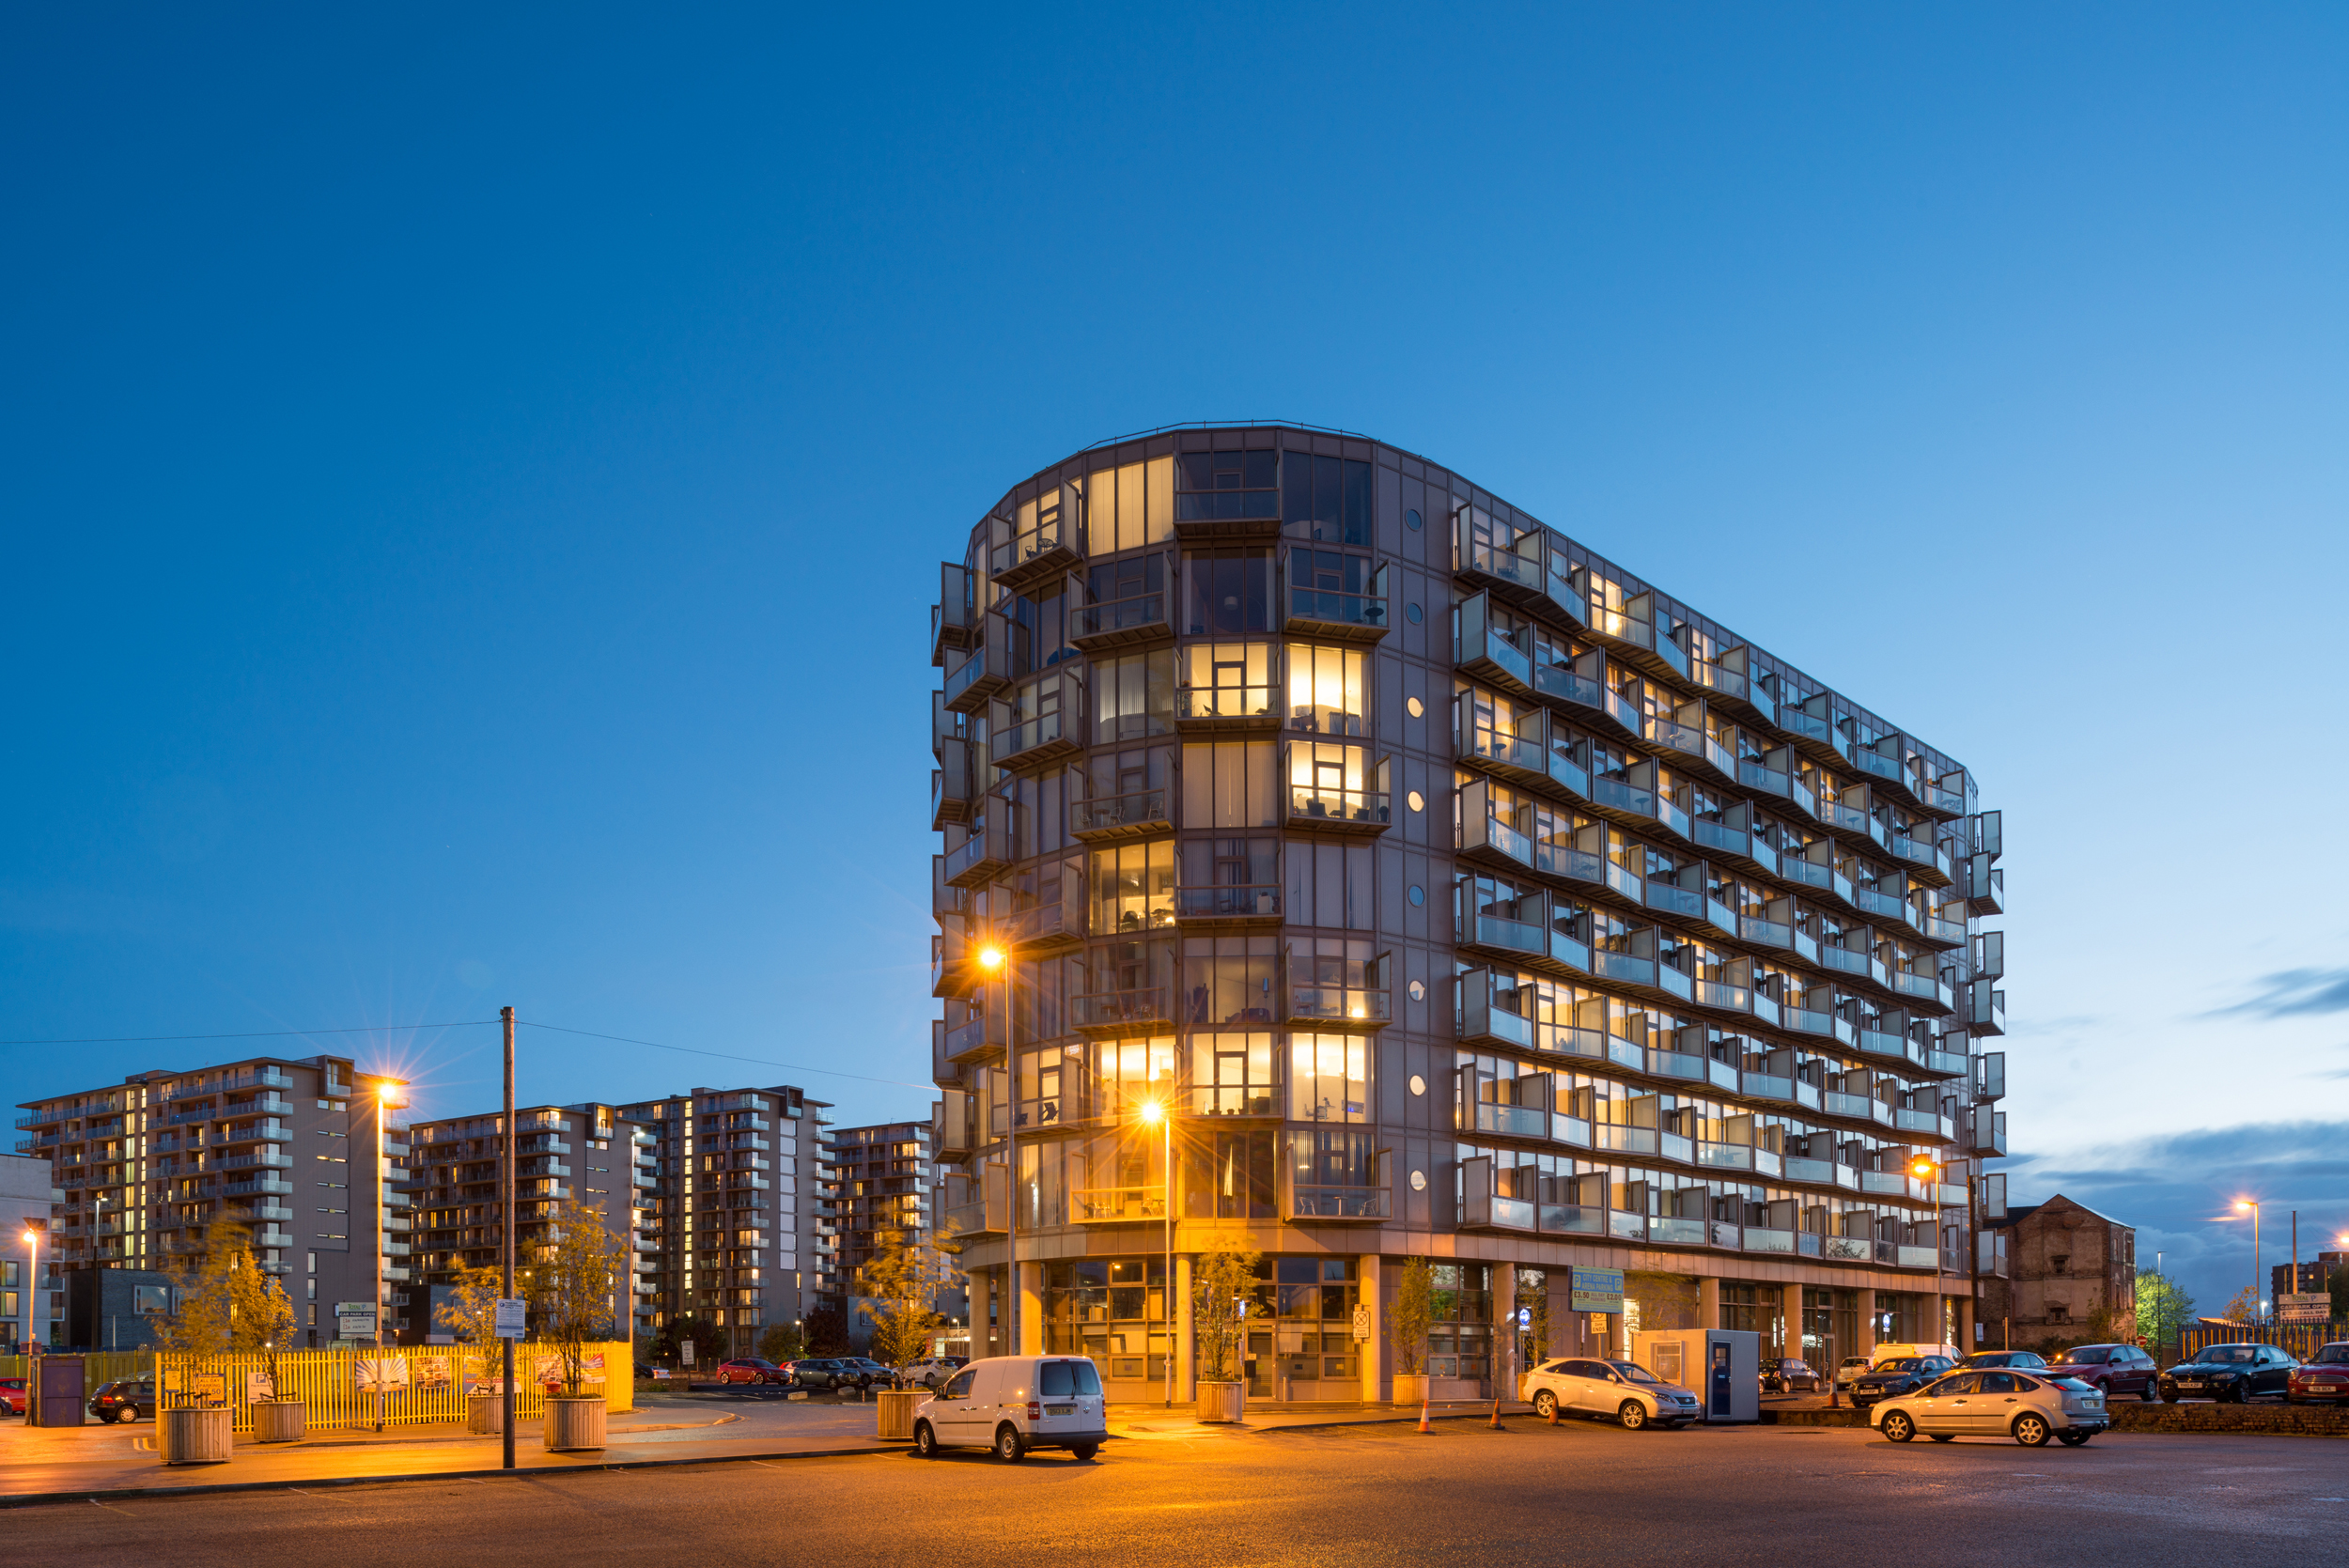 Greengage Apartments - Manchester